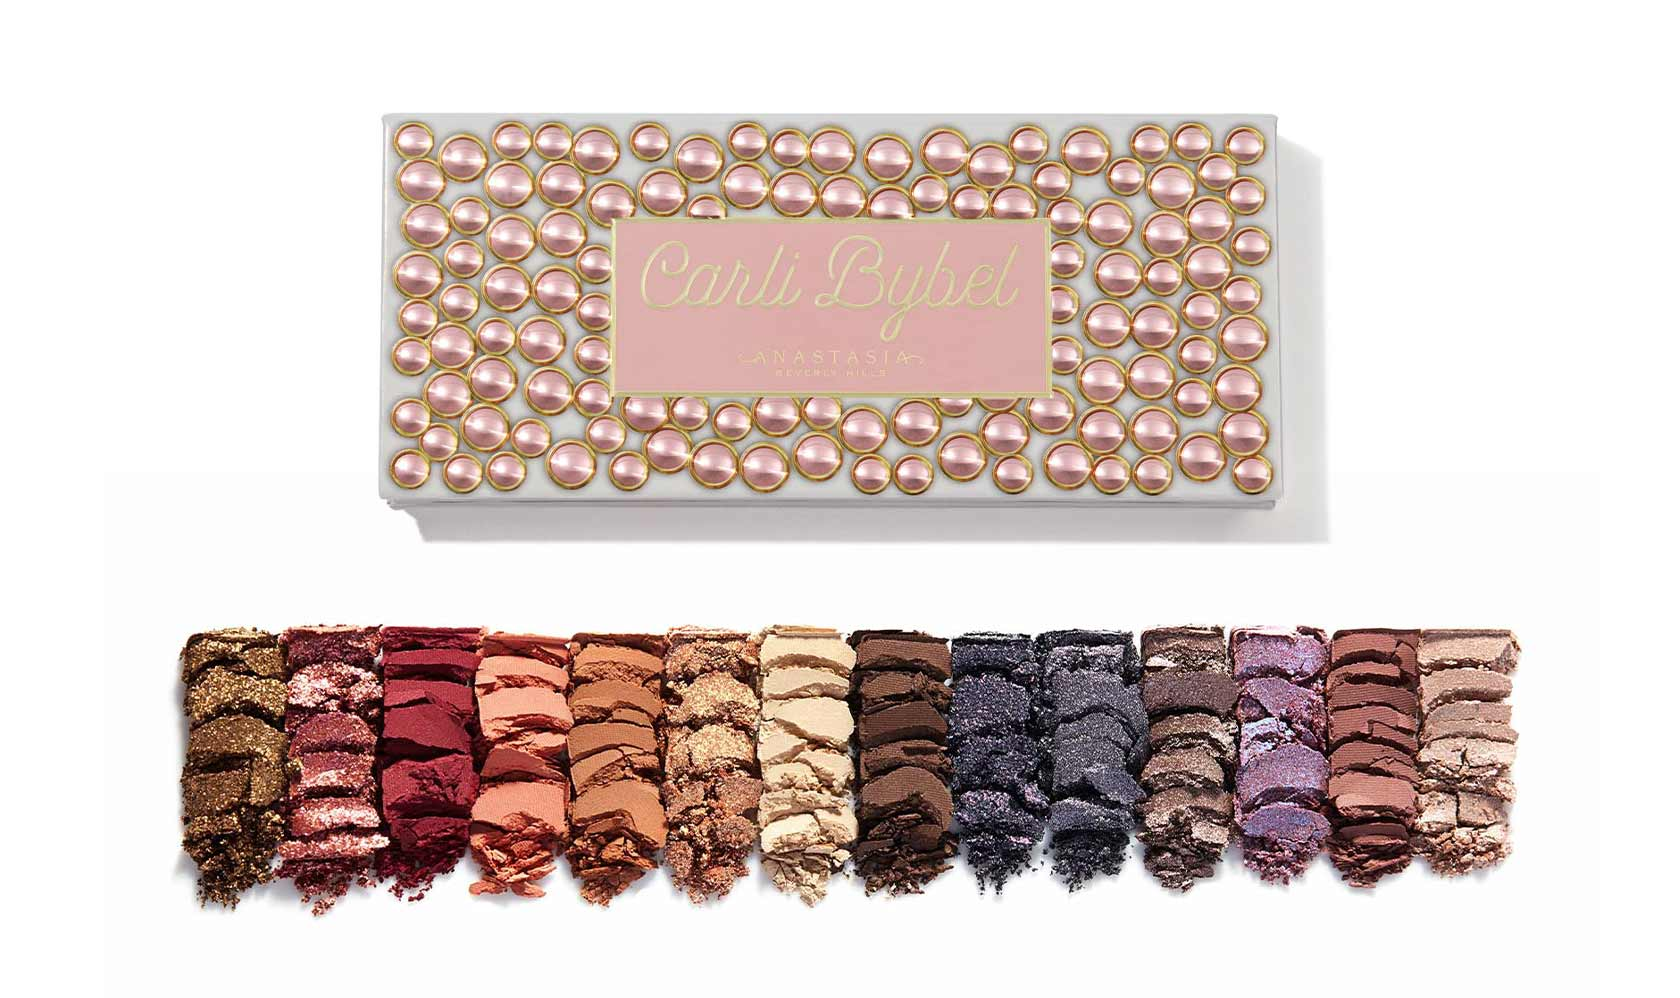 carli-bybel-palette-and-shades